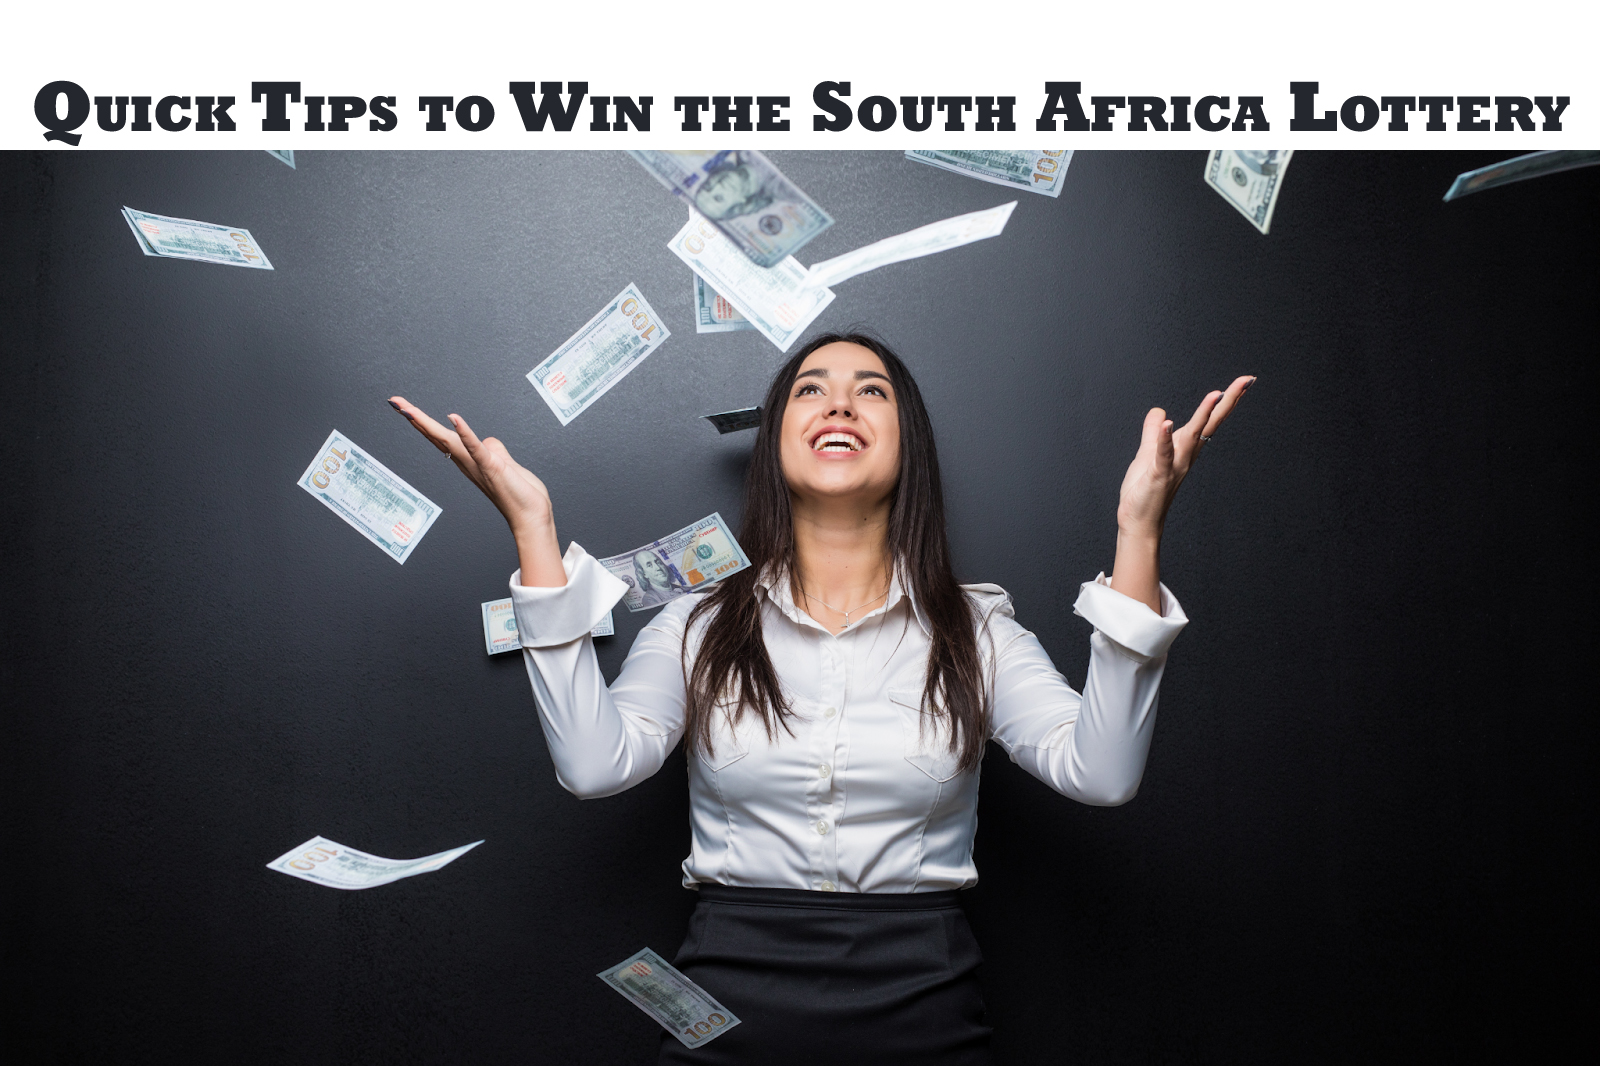 Quick Tips & Tricks How to win South Africa Lottery